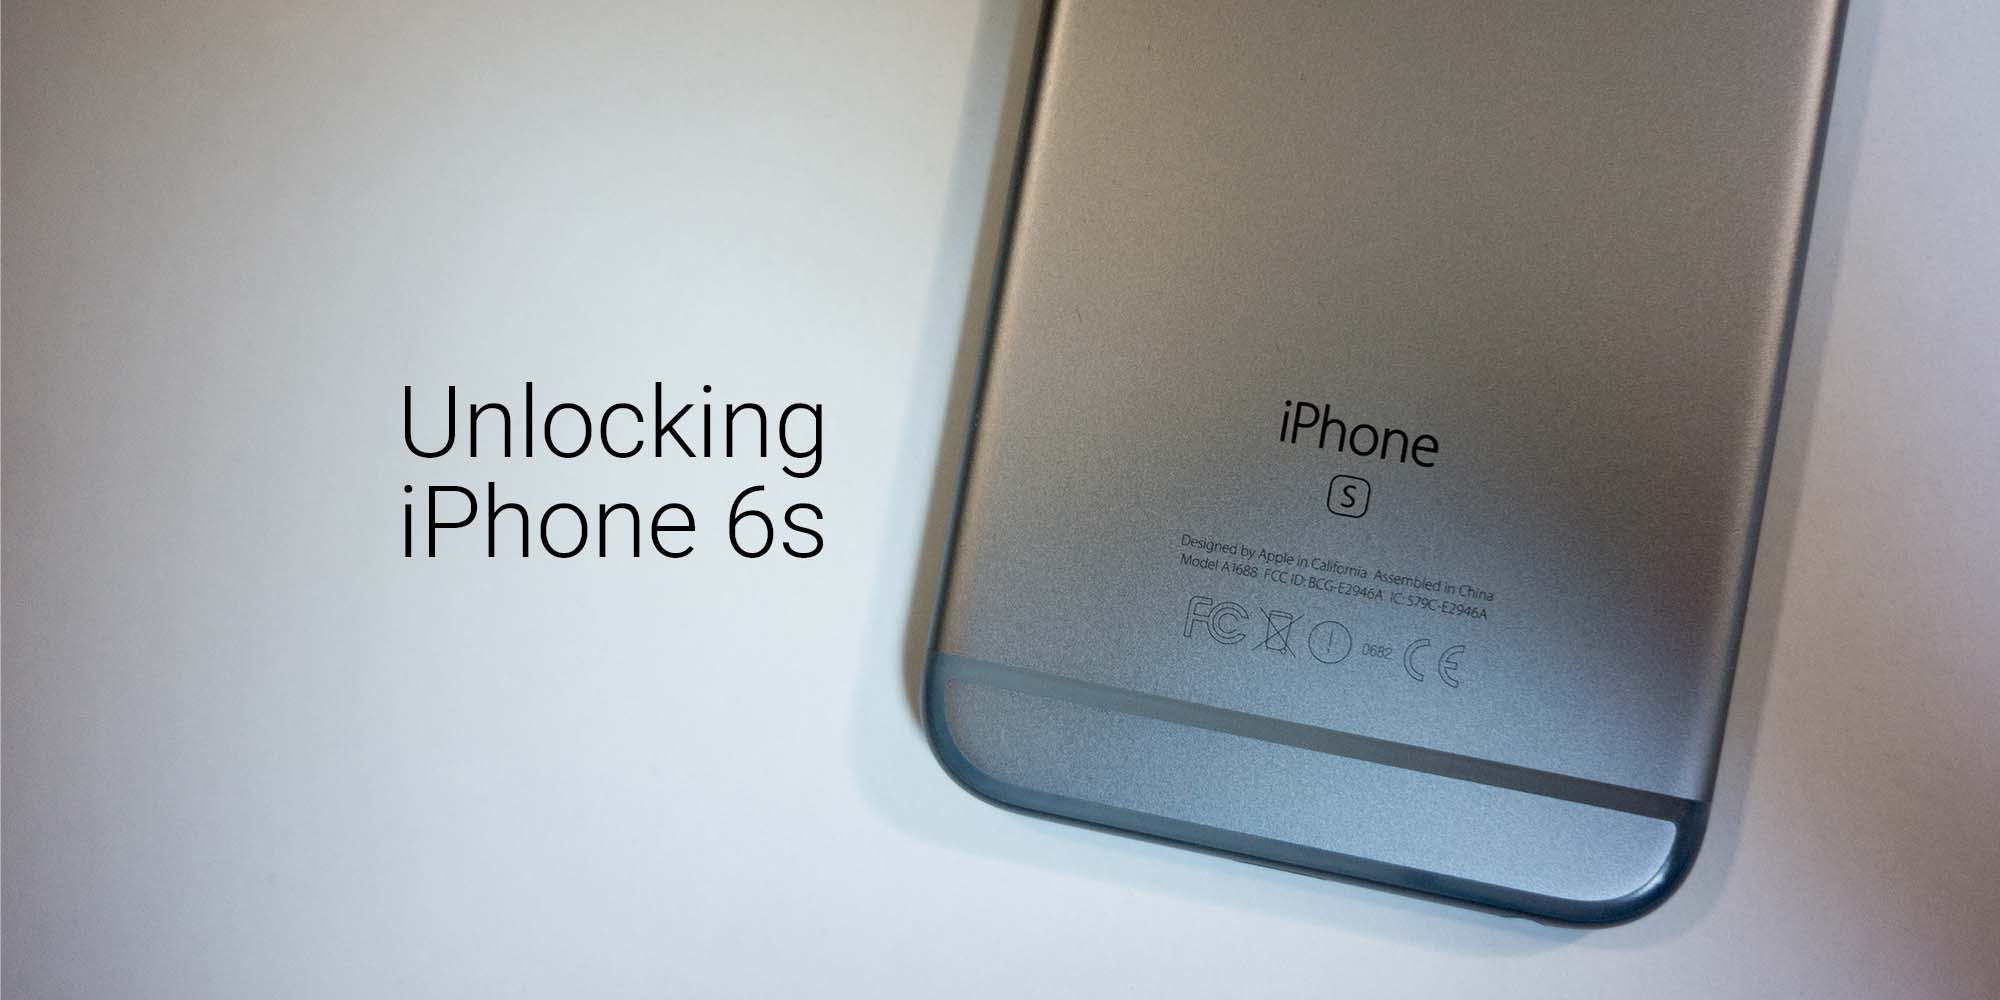 unlocking_iphone6s